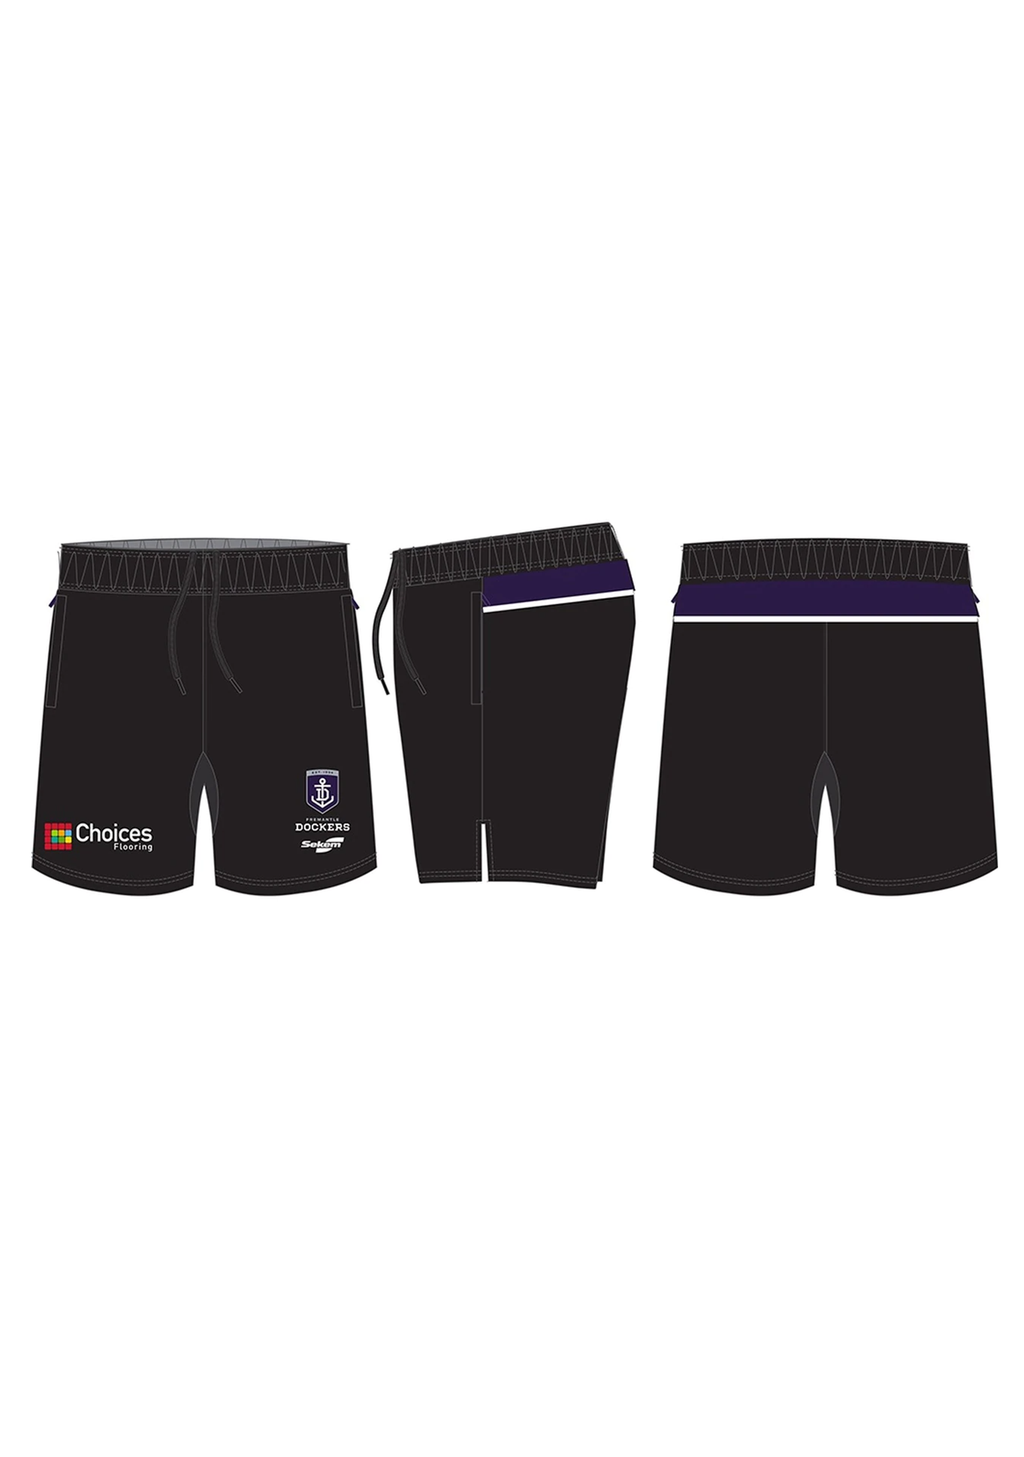 BURLEY SEKEM MENS FREMANTLE DOCKERS CLUB TRAINING SHORTS